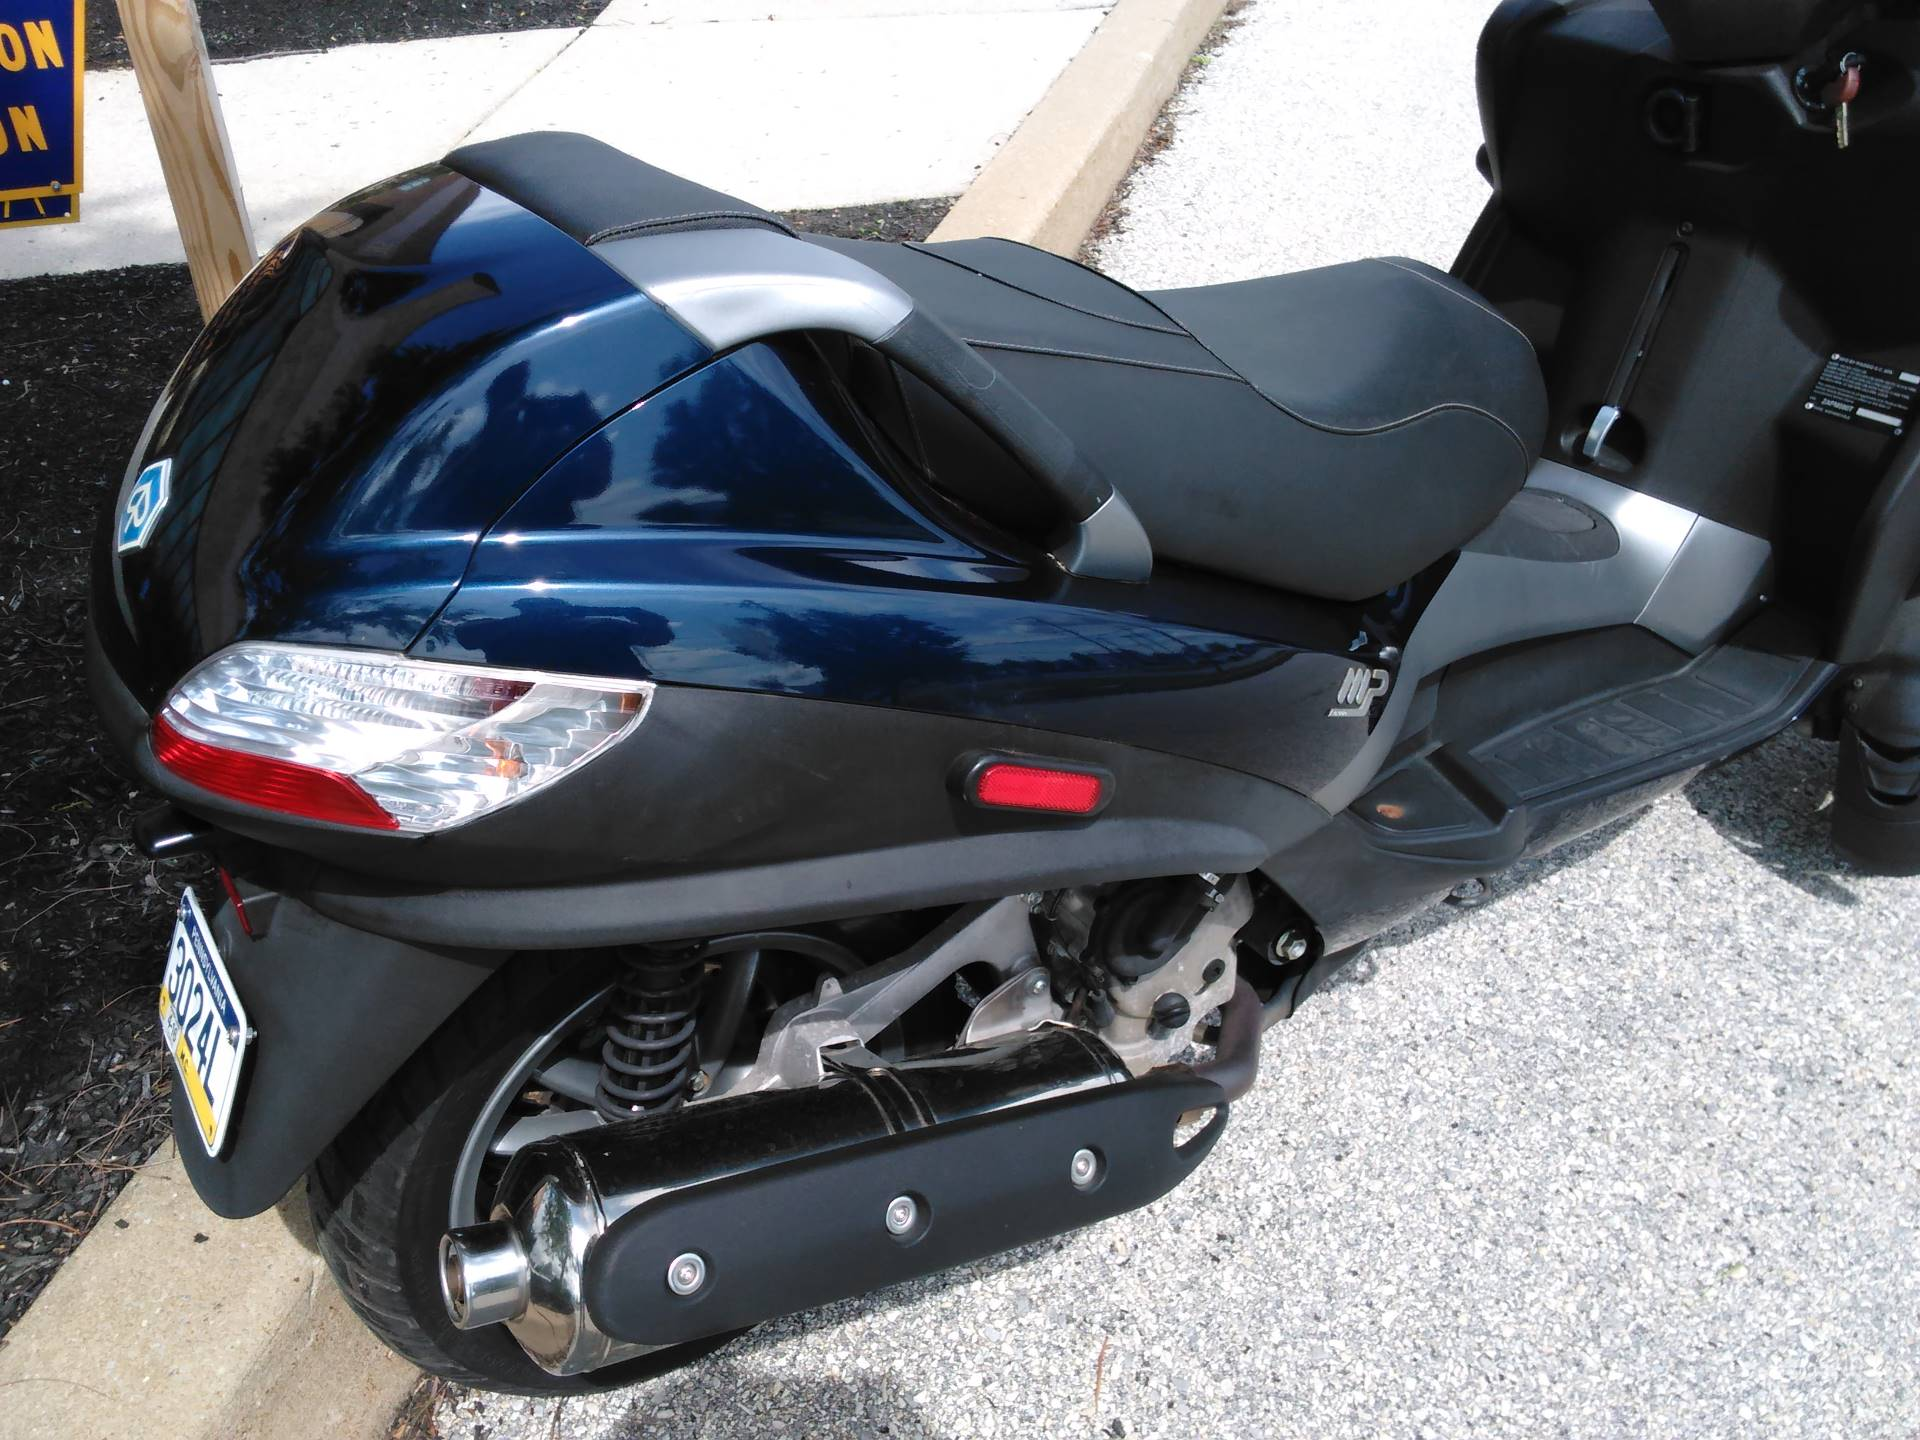 Used 2009 Piaggio MP3 400 Scooters in West Chester, PA